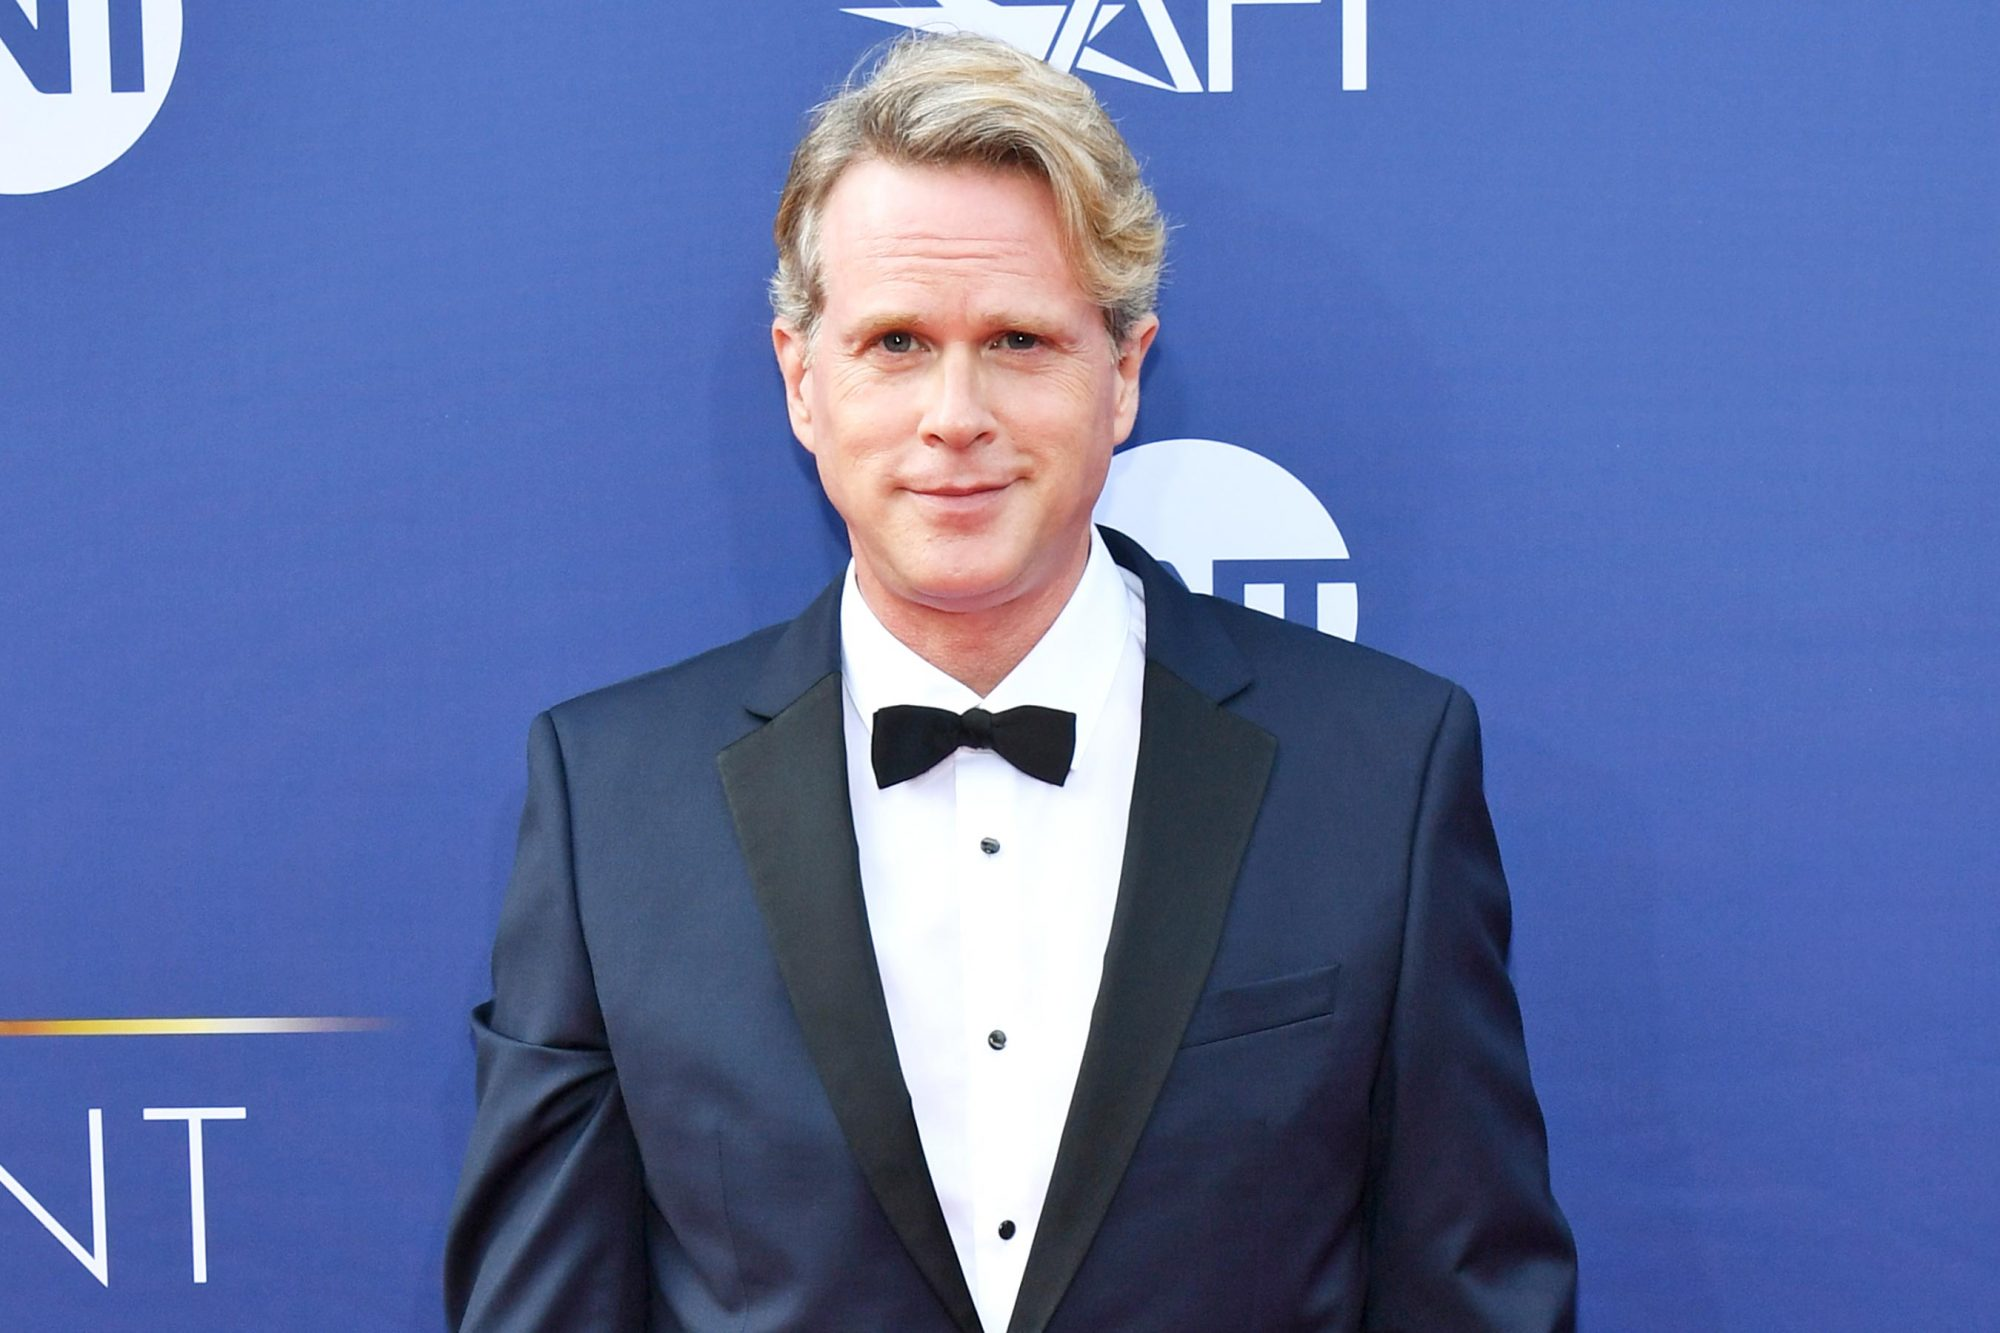 HOLLYWOOD, CALIFORNIA - JUNE 06: Cary Elwes attends the 47th AFI Life Achievement Award honoring Denzel Washington at Dolby Theatre on June 06, 2019 in Hollywood, California. (Photo by Amy Sussman/Getty Images for WarnerMedia) 610507